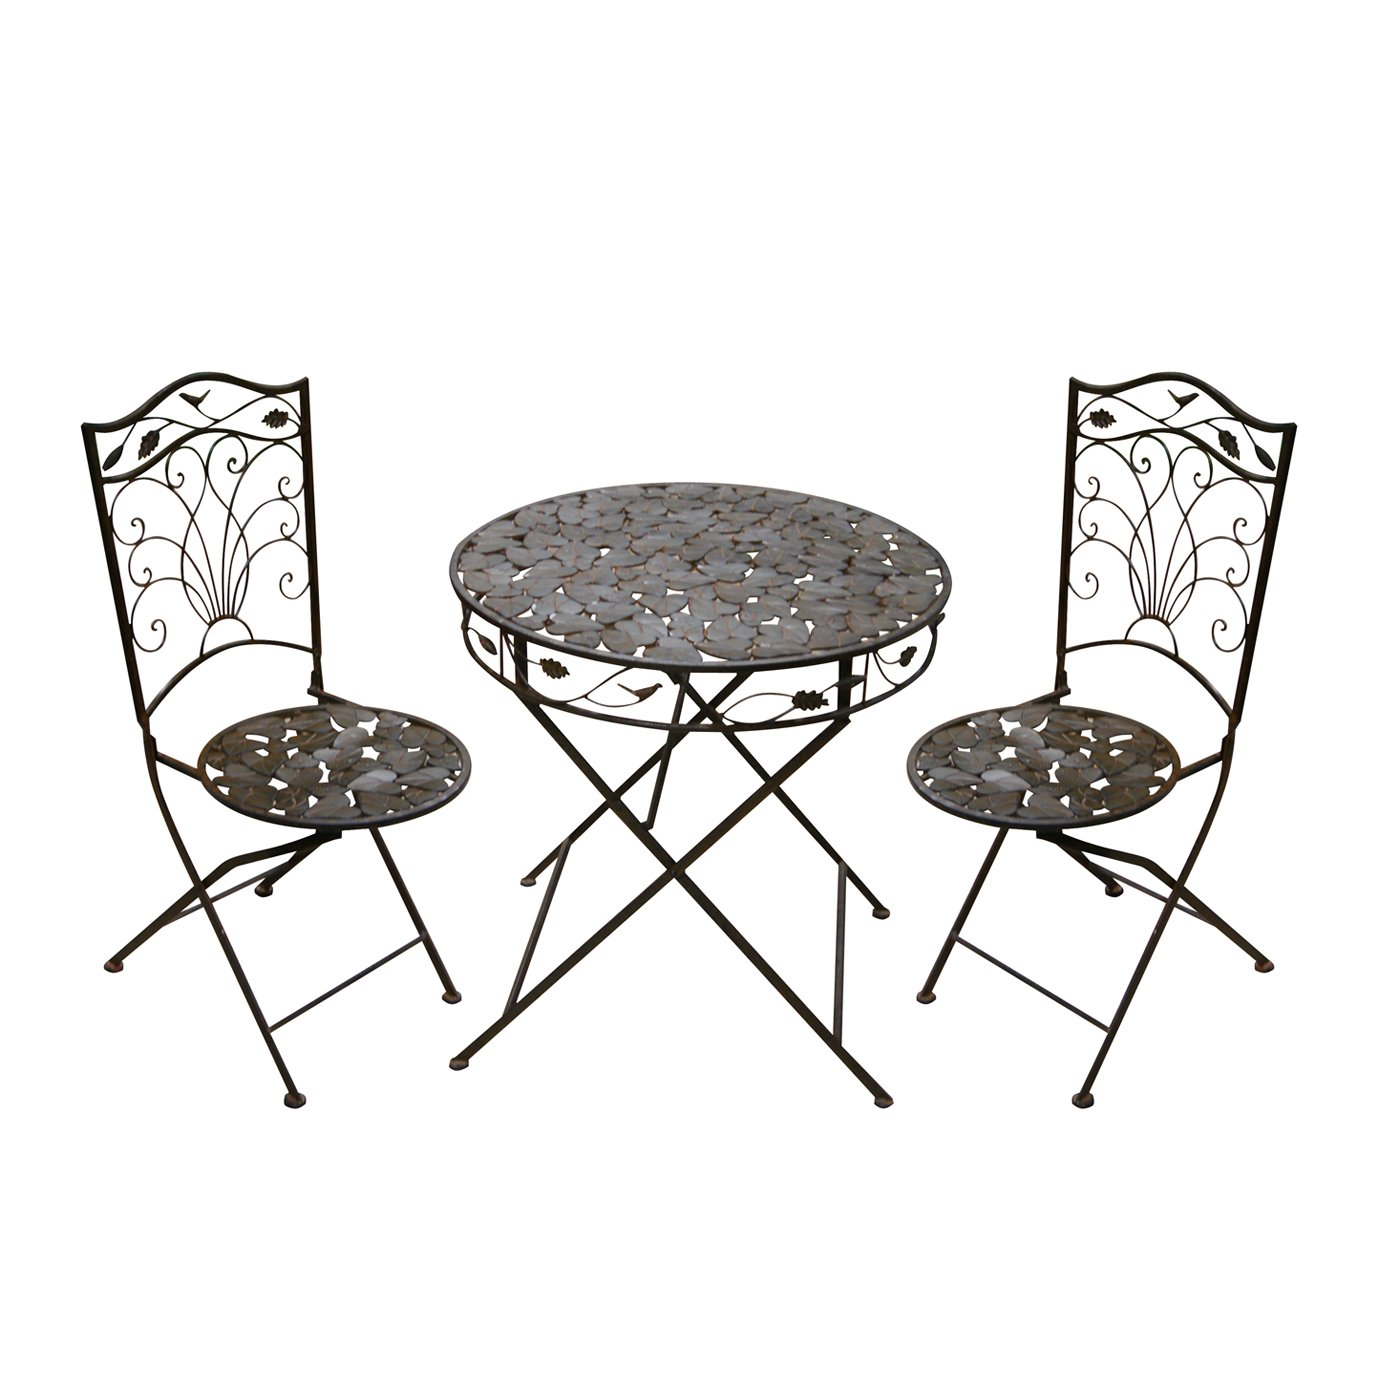 Bistro Set (2 Chairs and 1 Table)